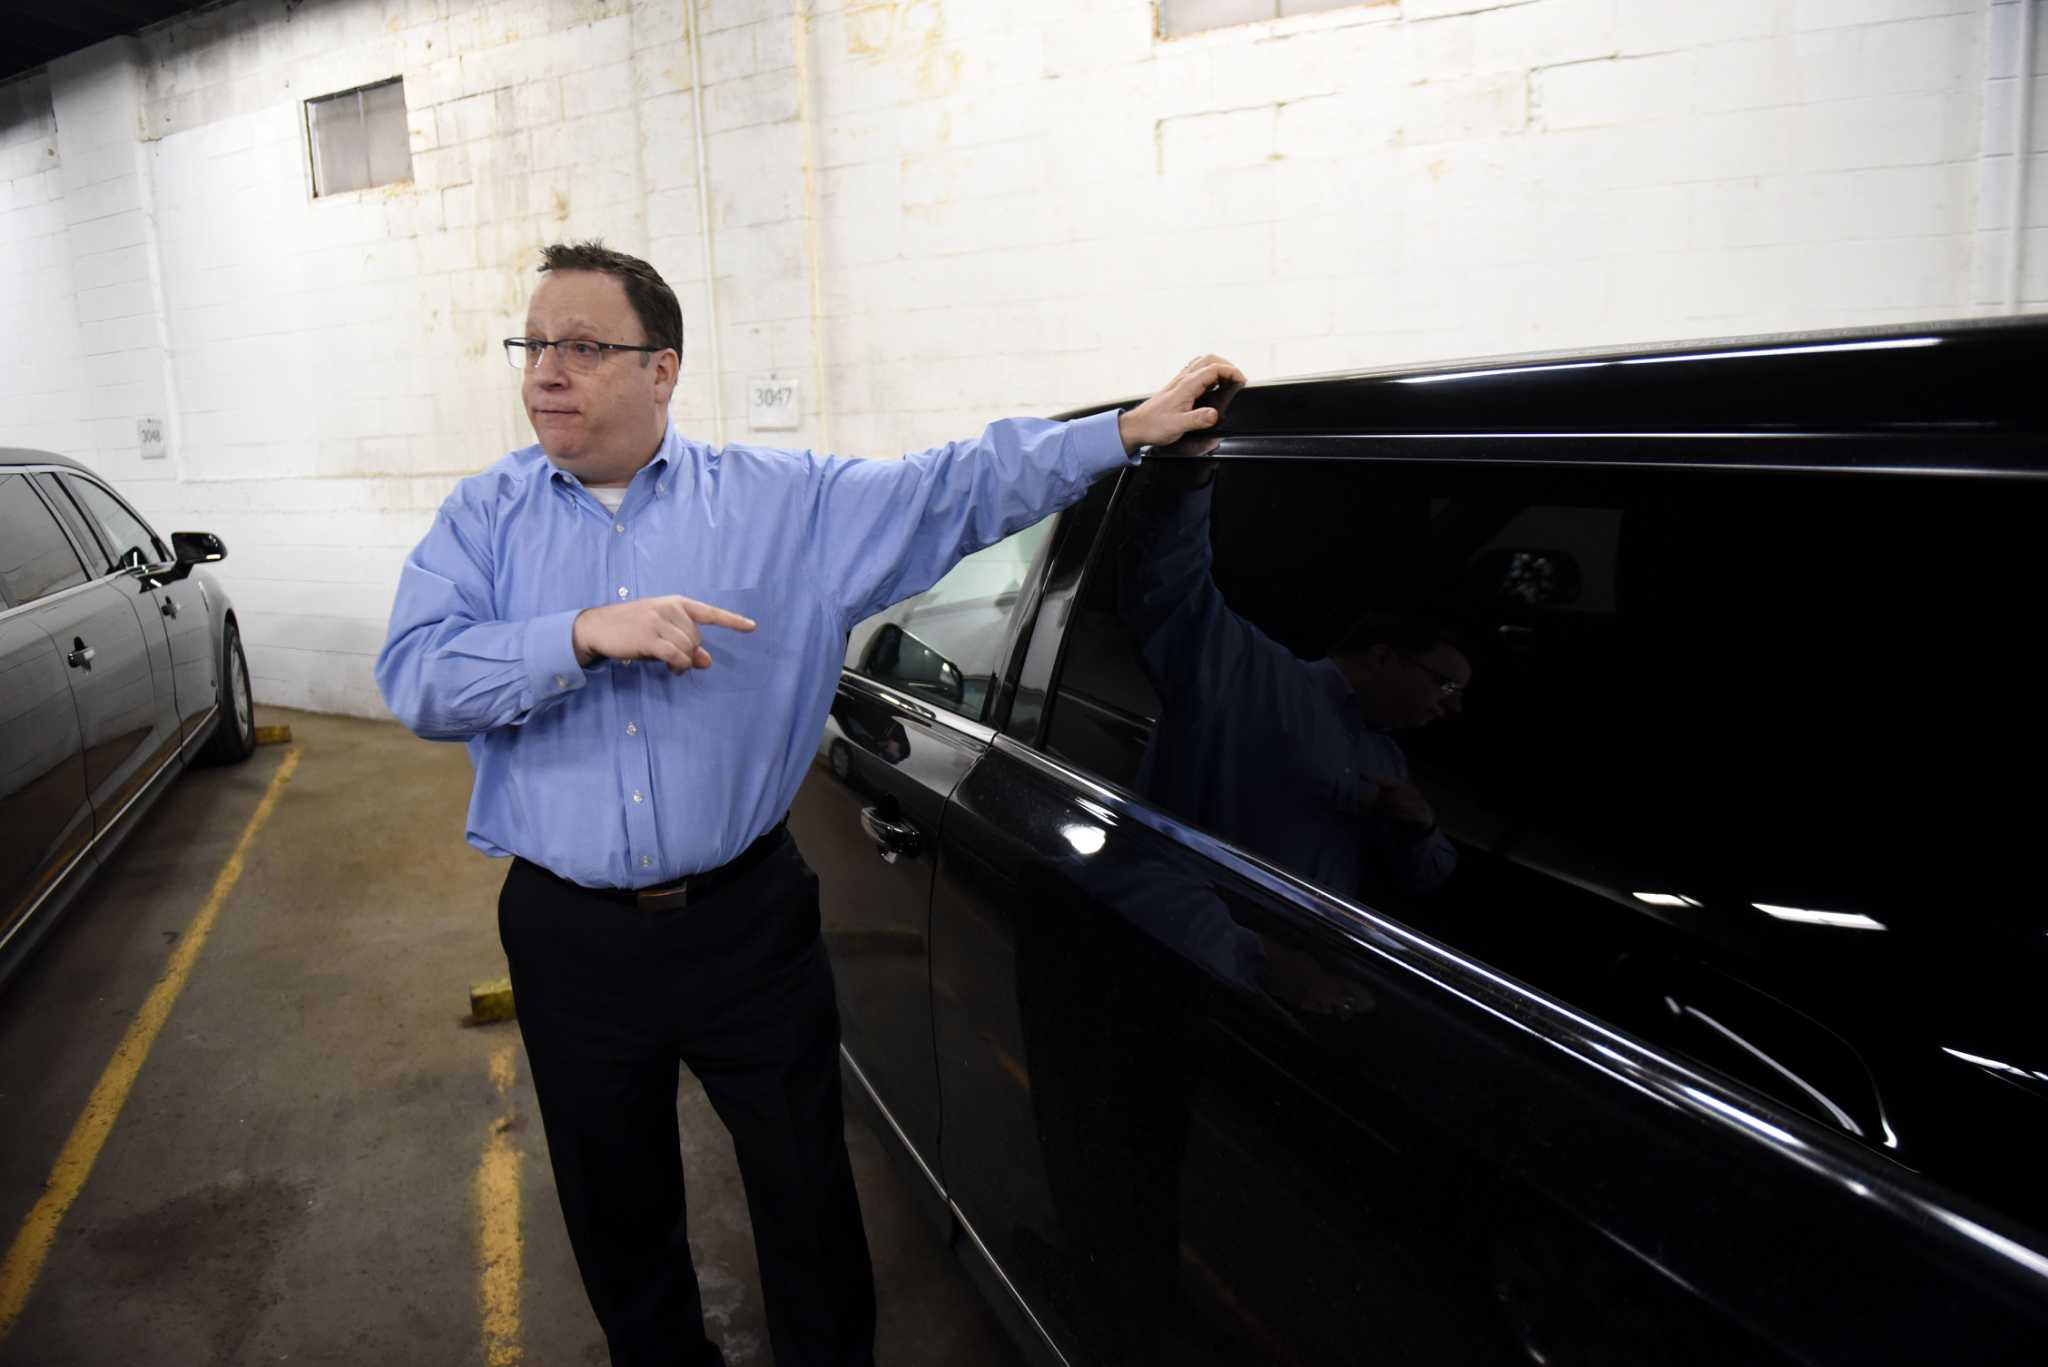 Senate schedules limo safety hearing for next week